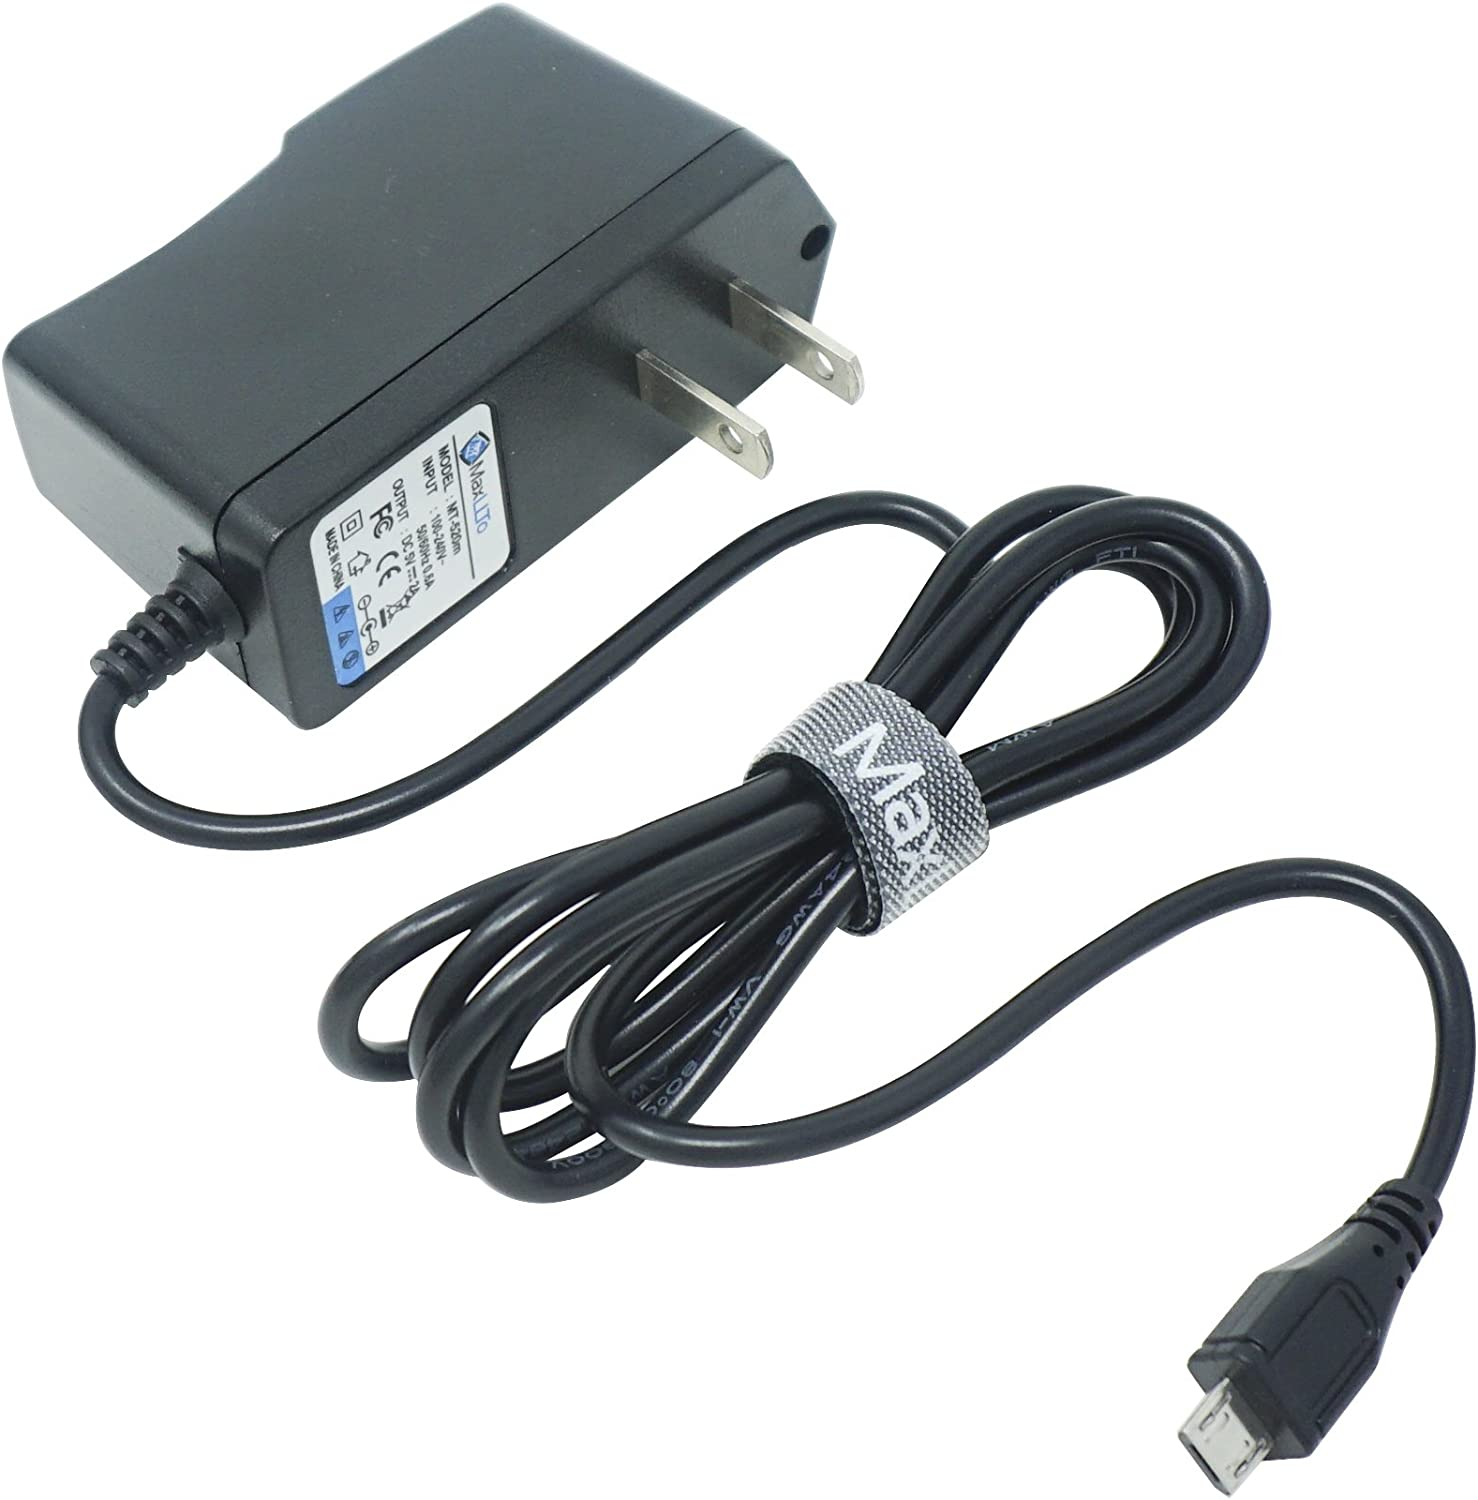 984-000551 AC Adapter Charger Power Supply for Ultimate Ears BOOM 2 S-00151